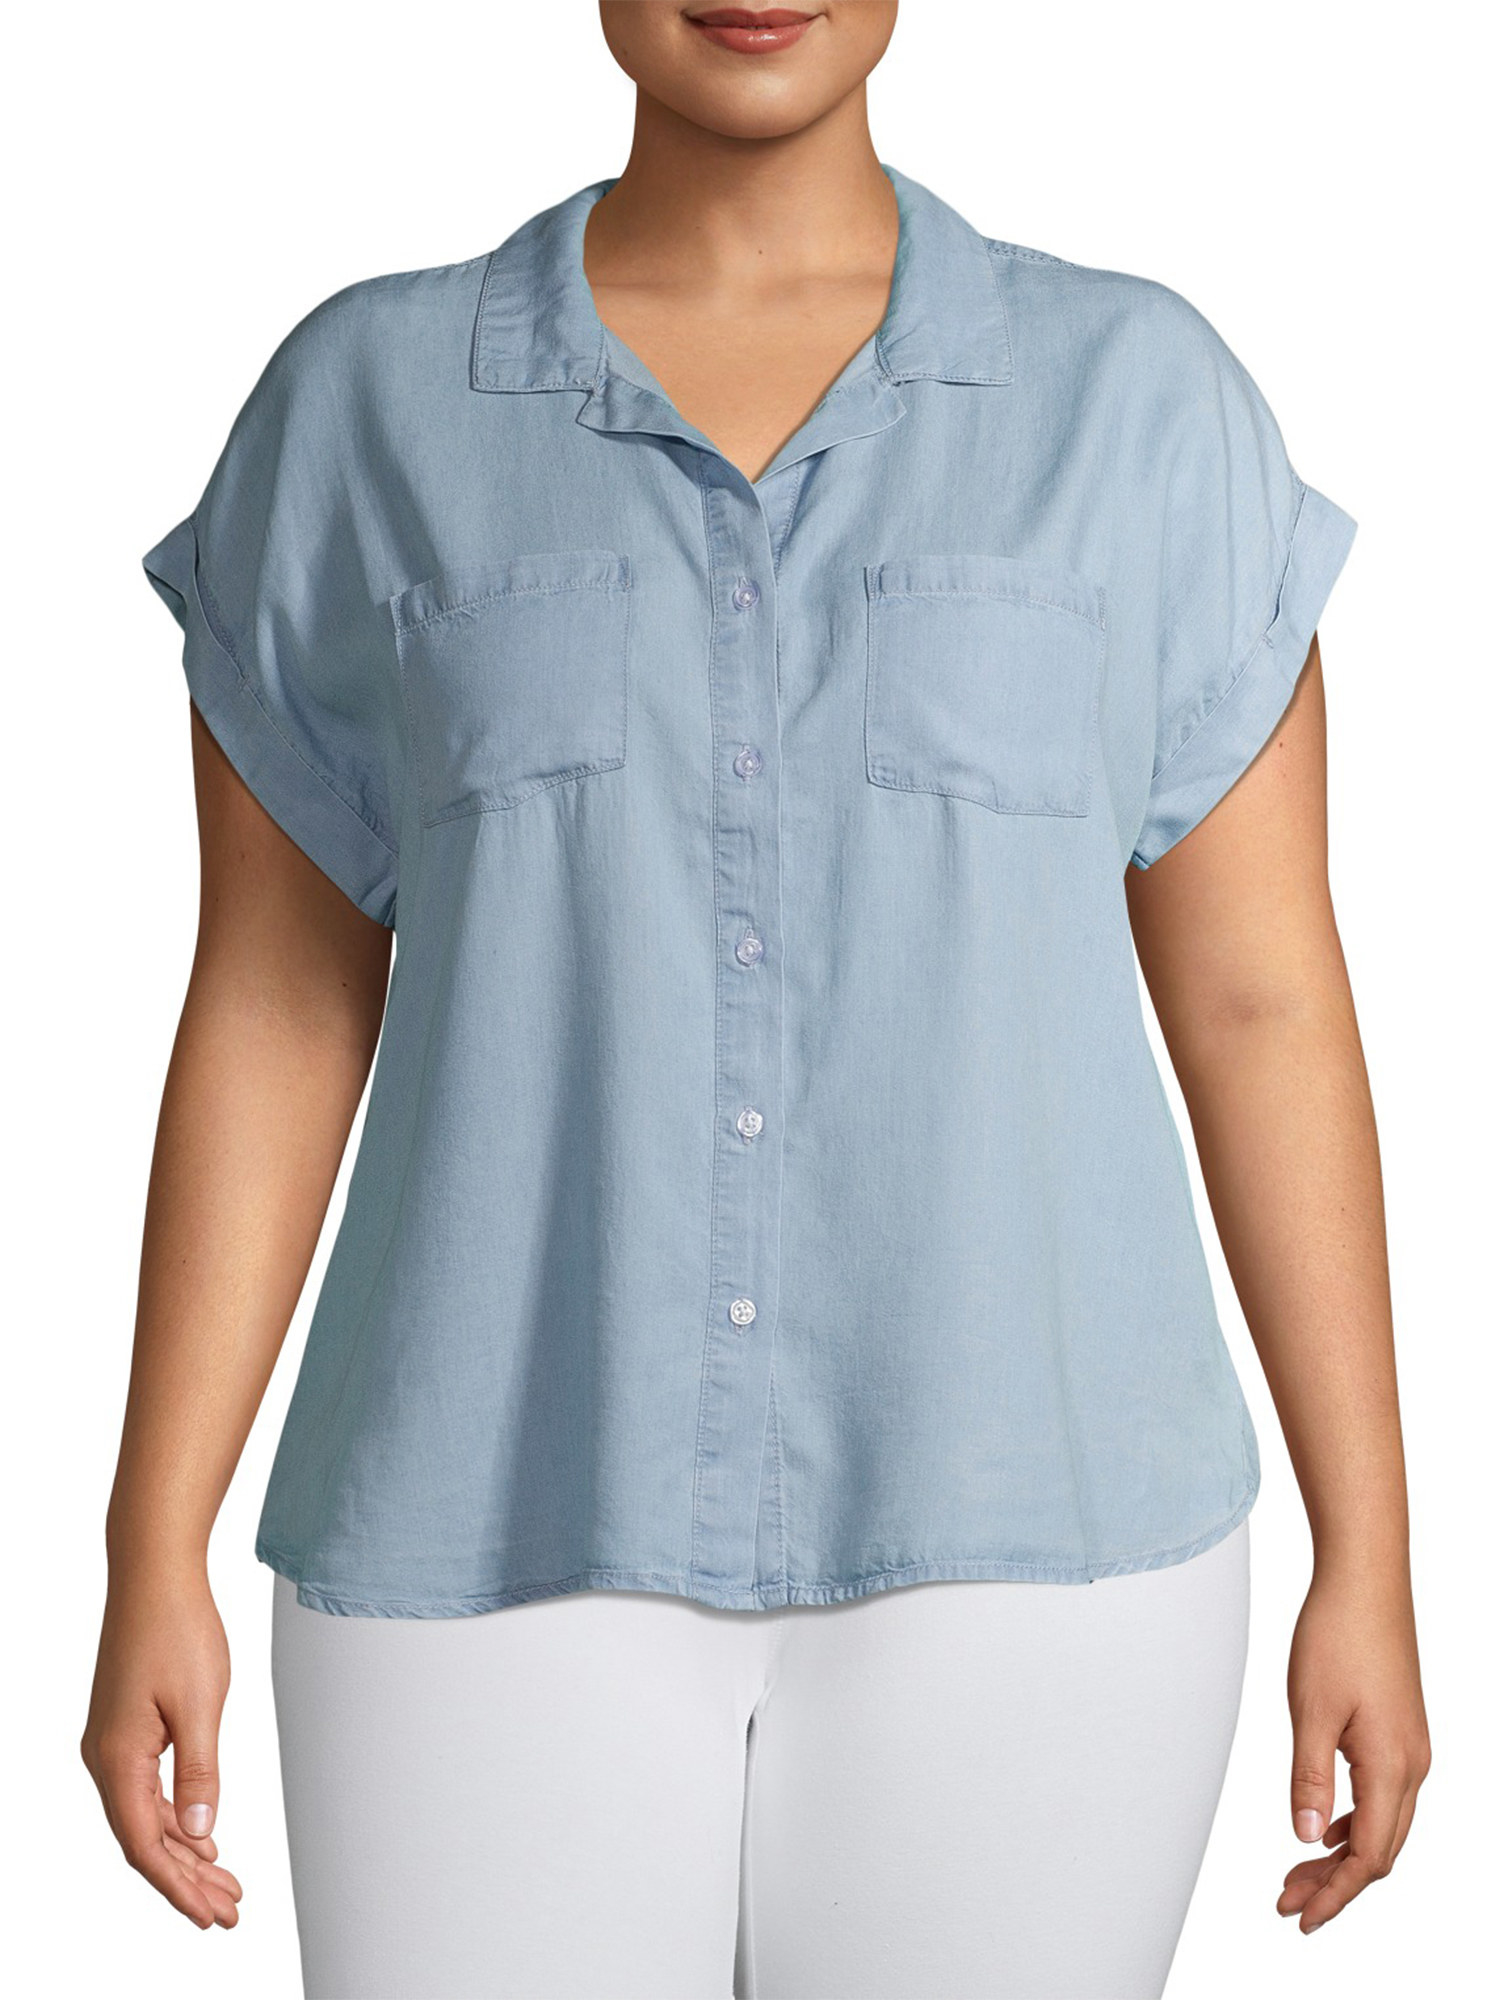 The chambray short sleeve button down